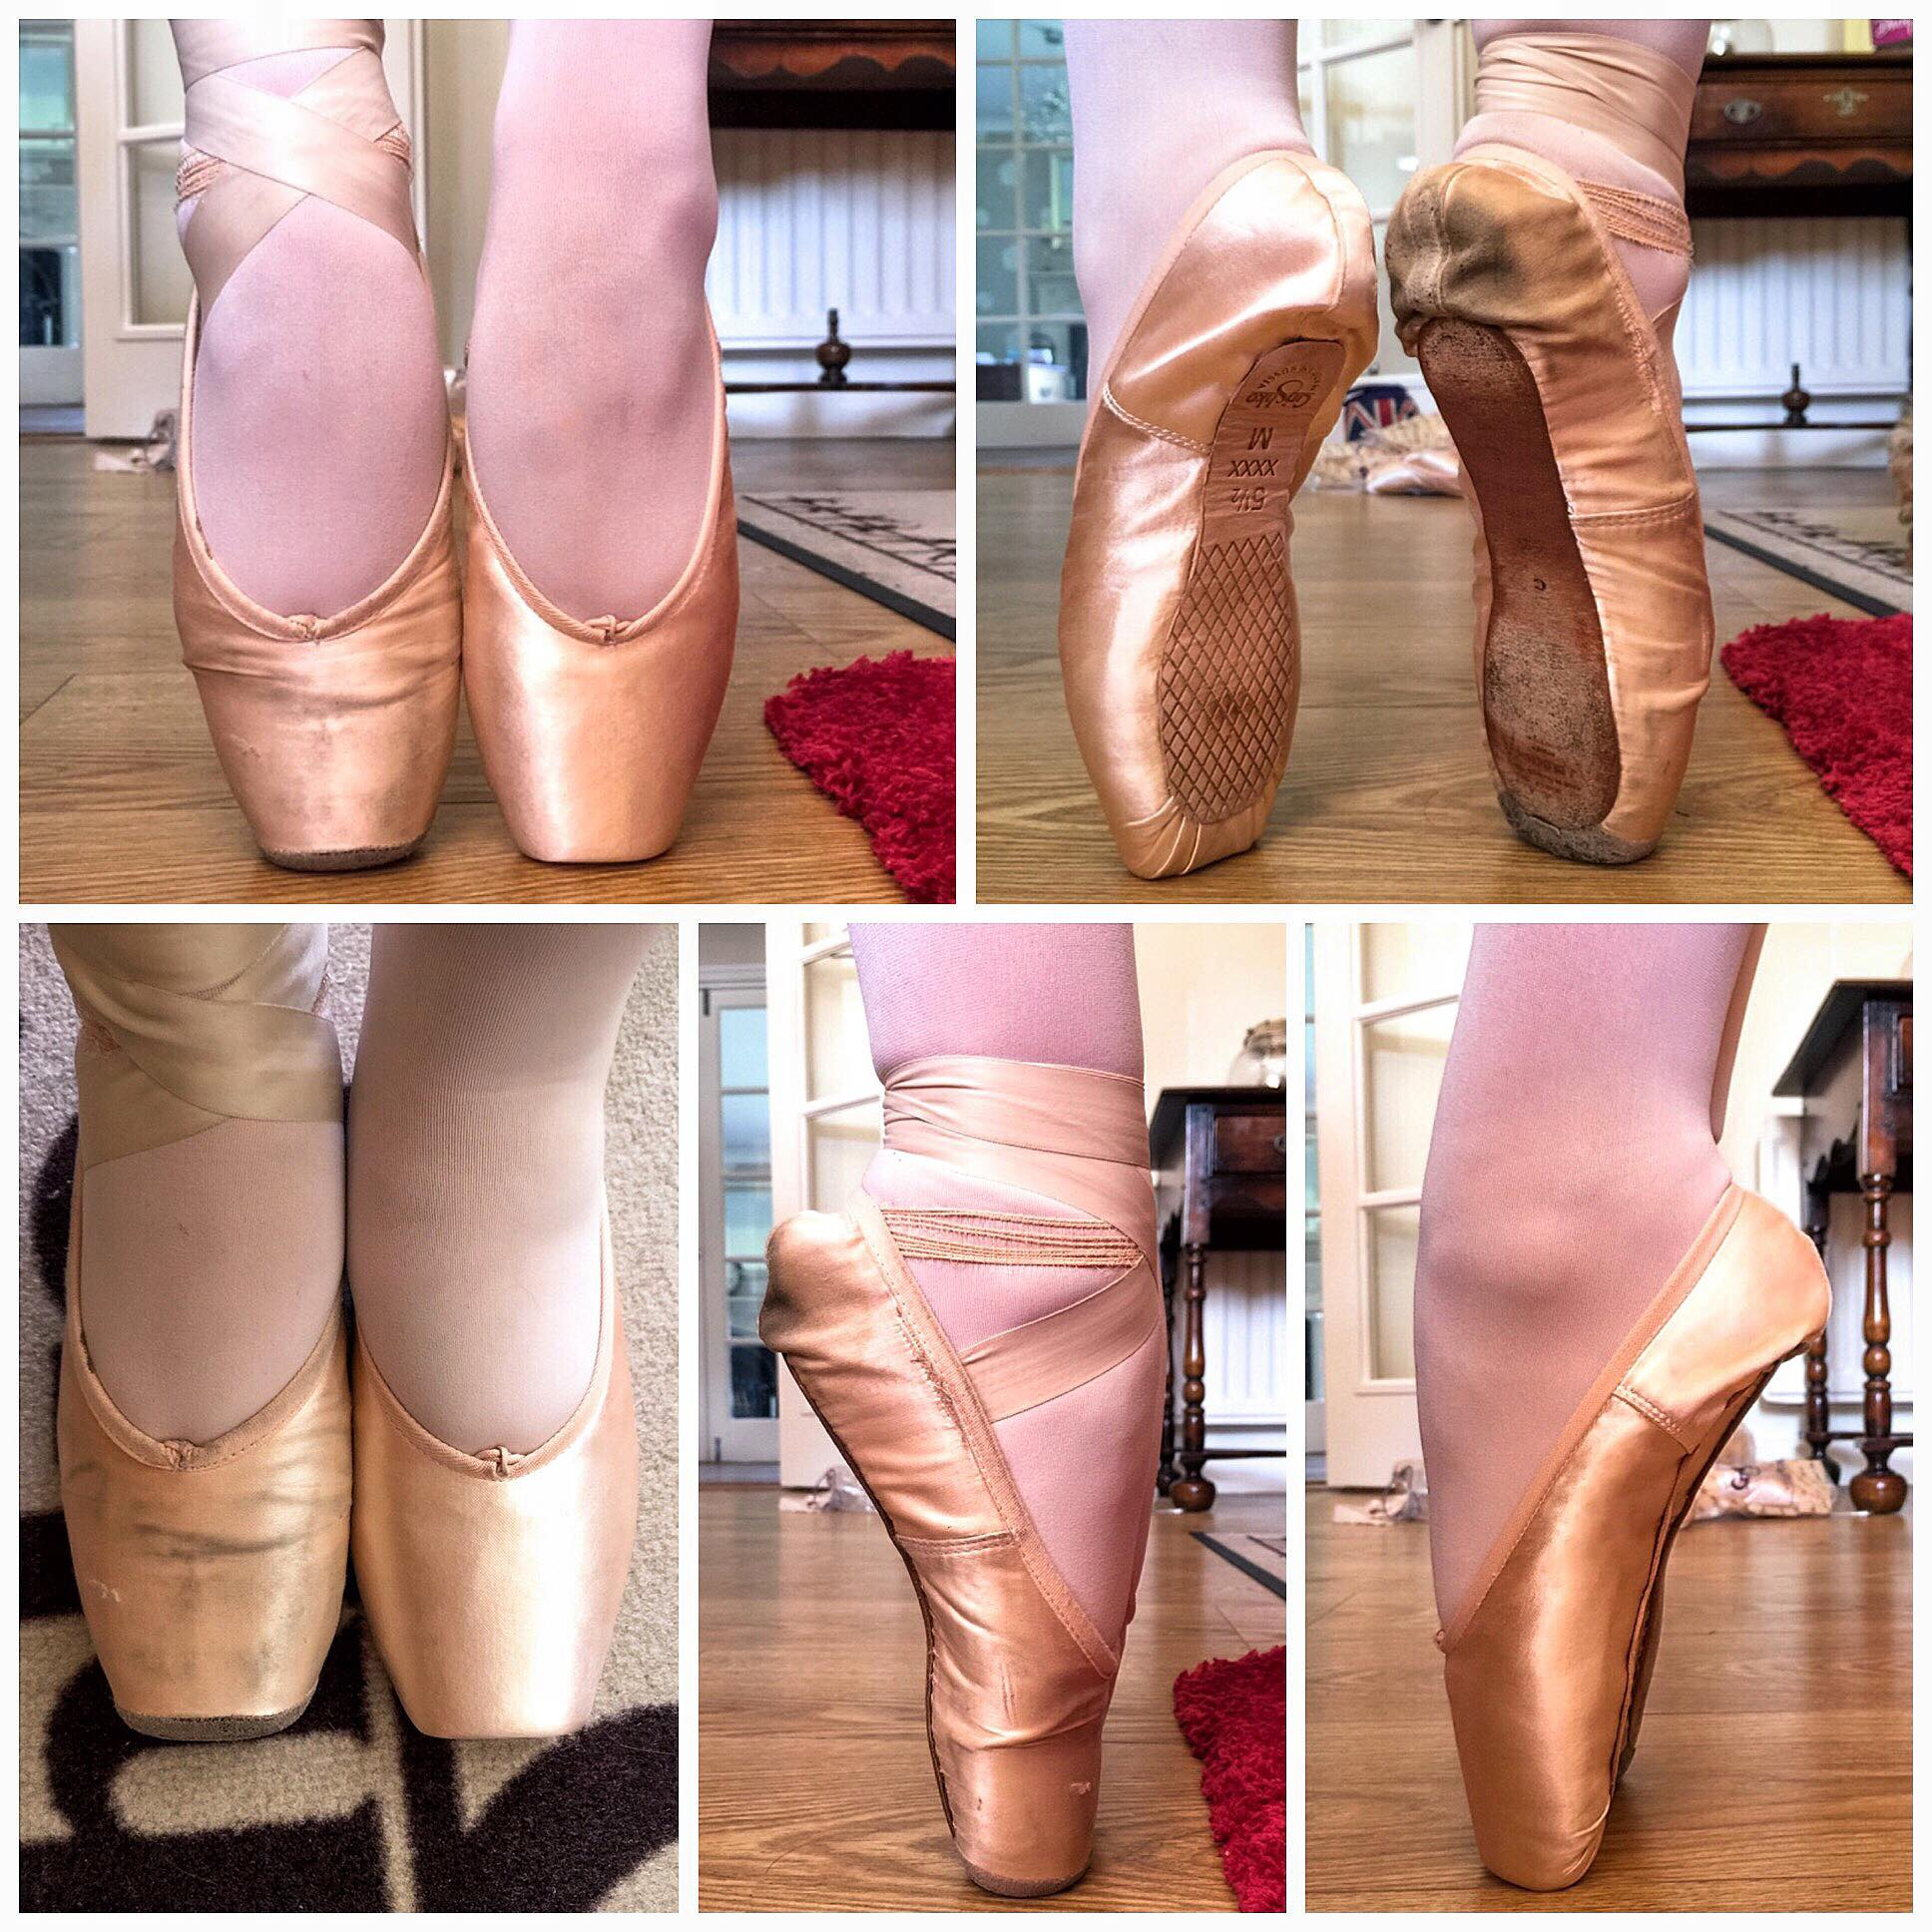 How do you fit pointe shoes correctly?